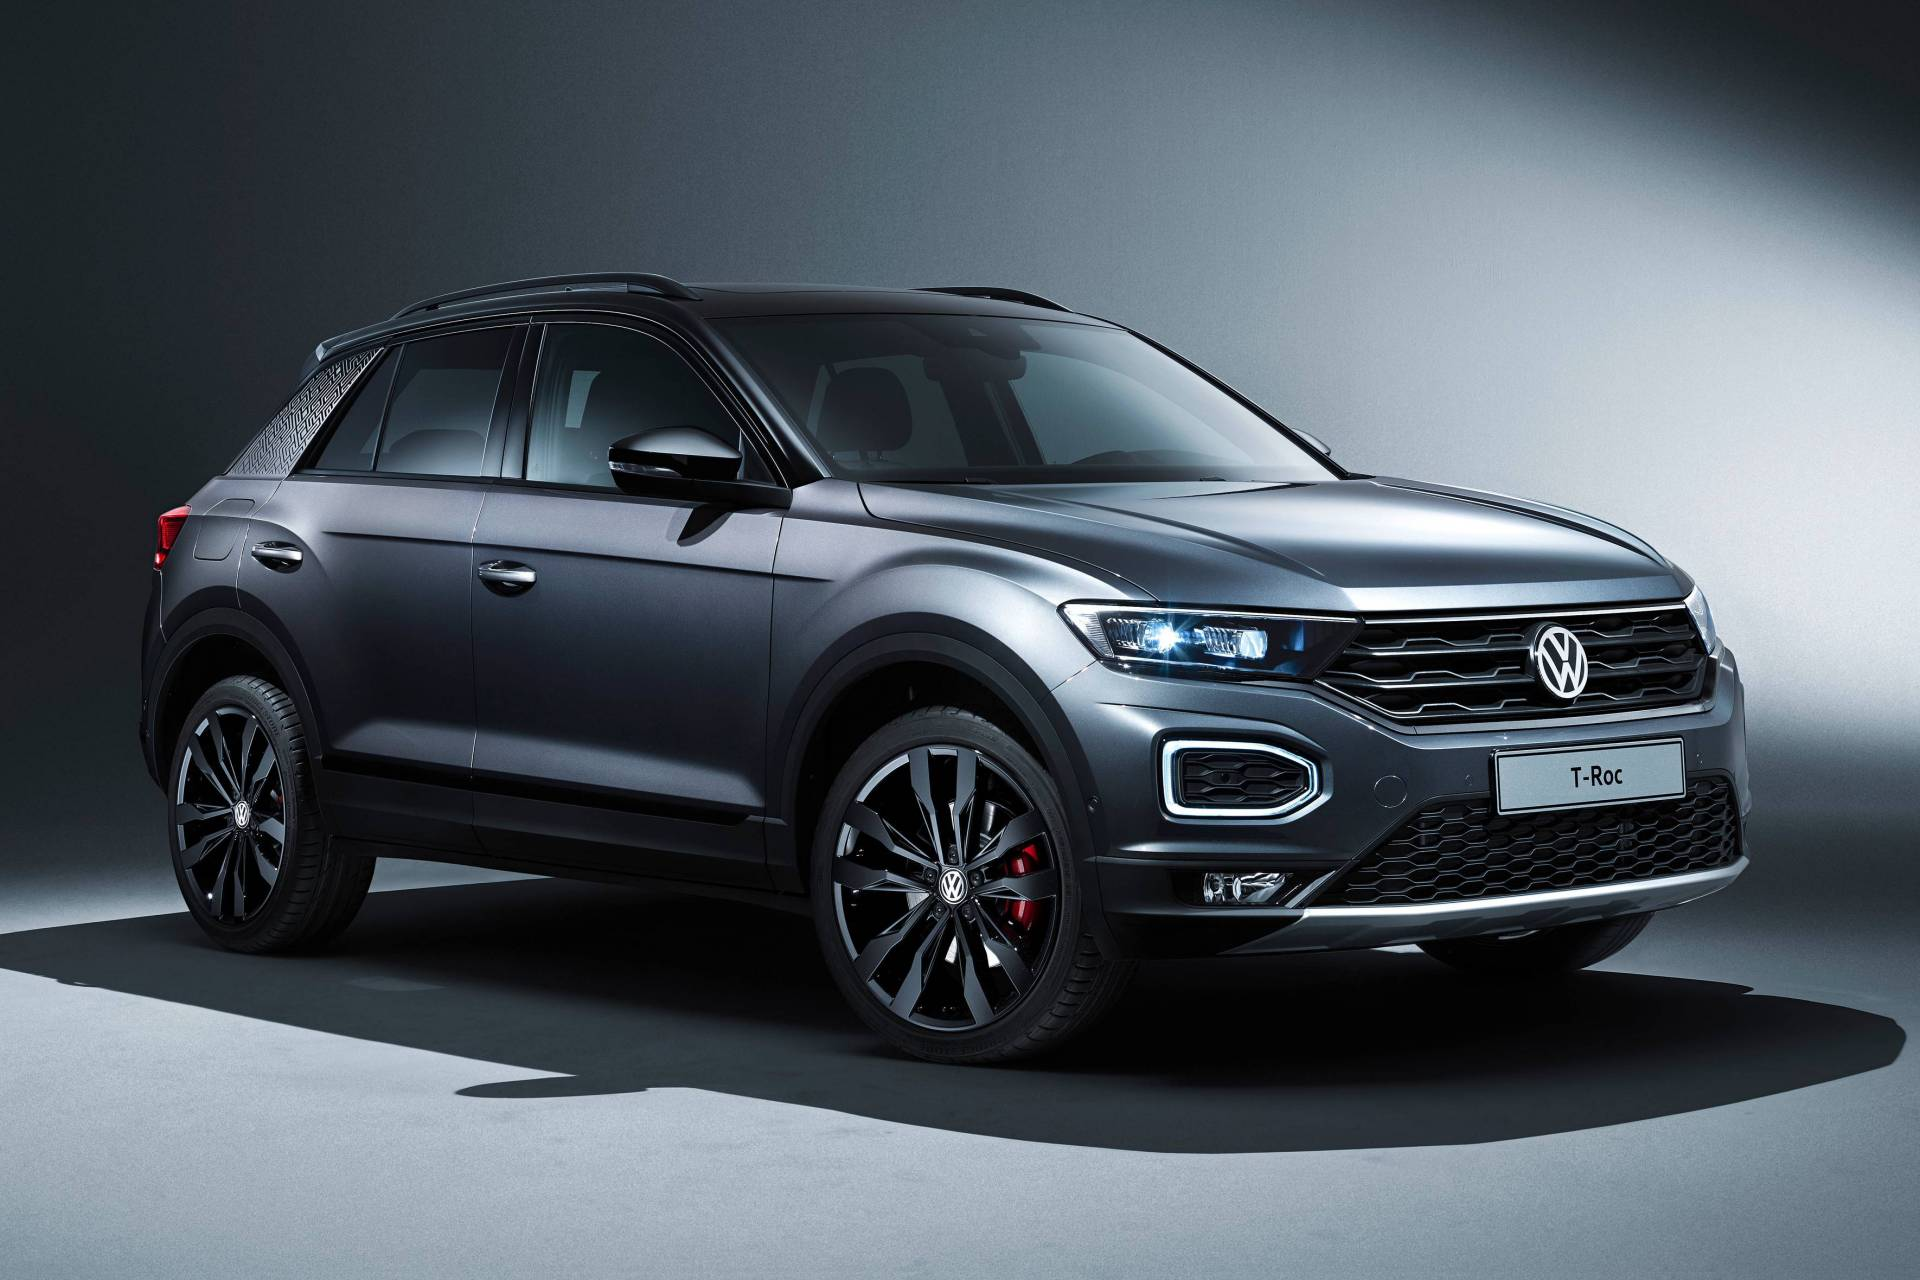 Vw T Roc Gains 187 Hp Diesel Two New Design Packs In Europe Carscoops